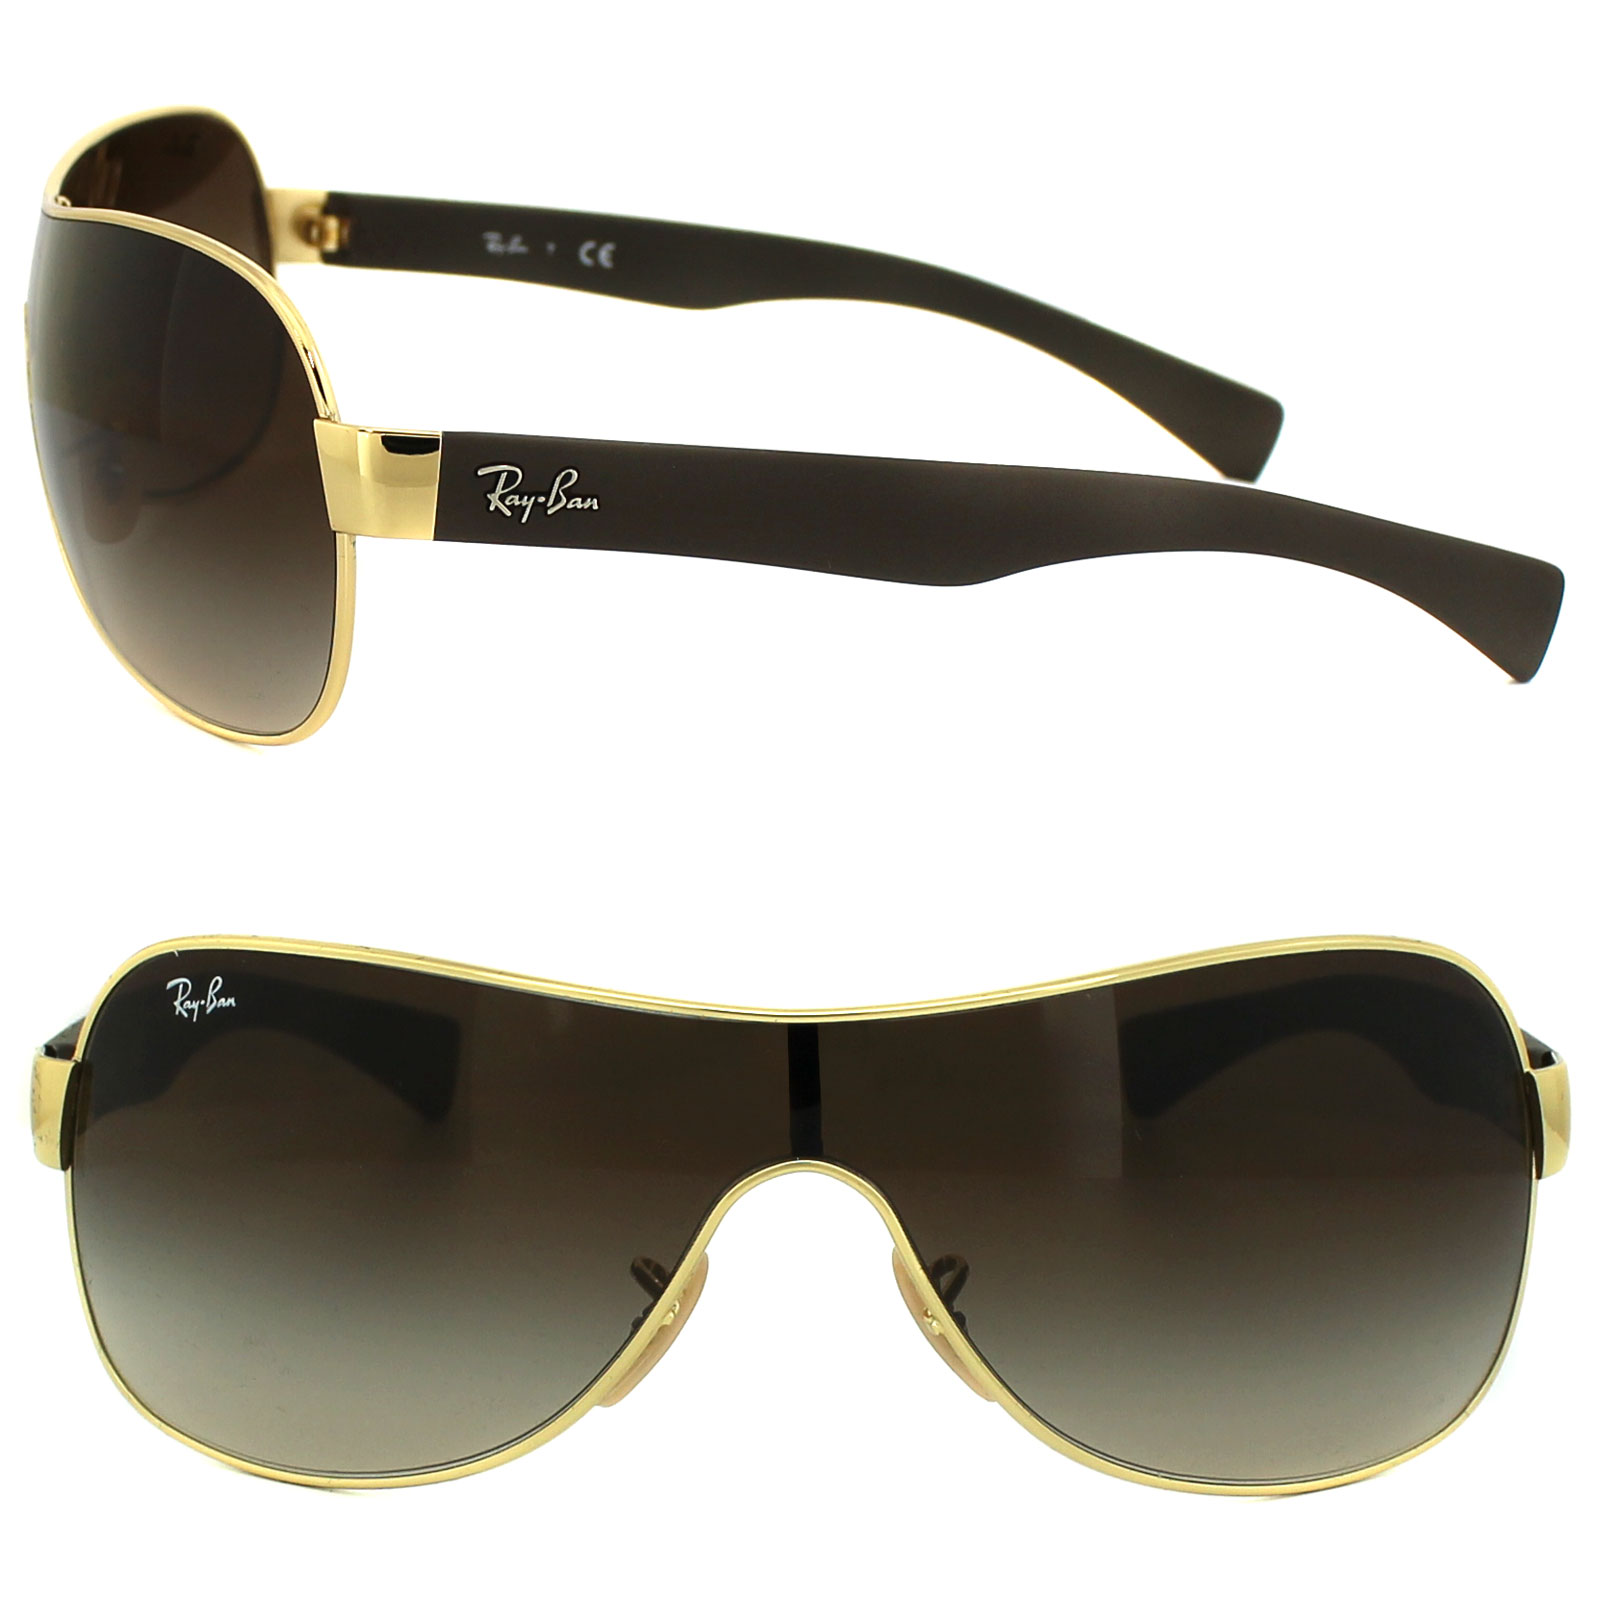 ray ban sunglasses 3471 001 13 gold brown gradient. Black Bedroom Furniture Sets. Home Design Ideas